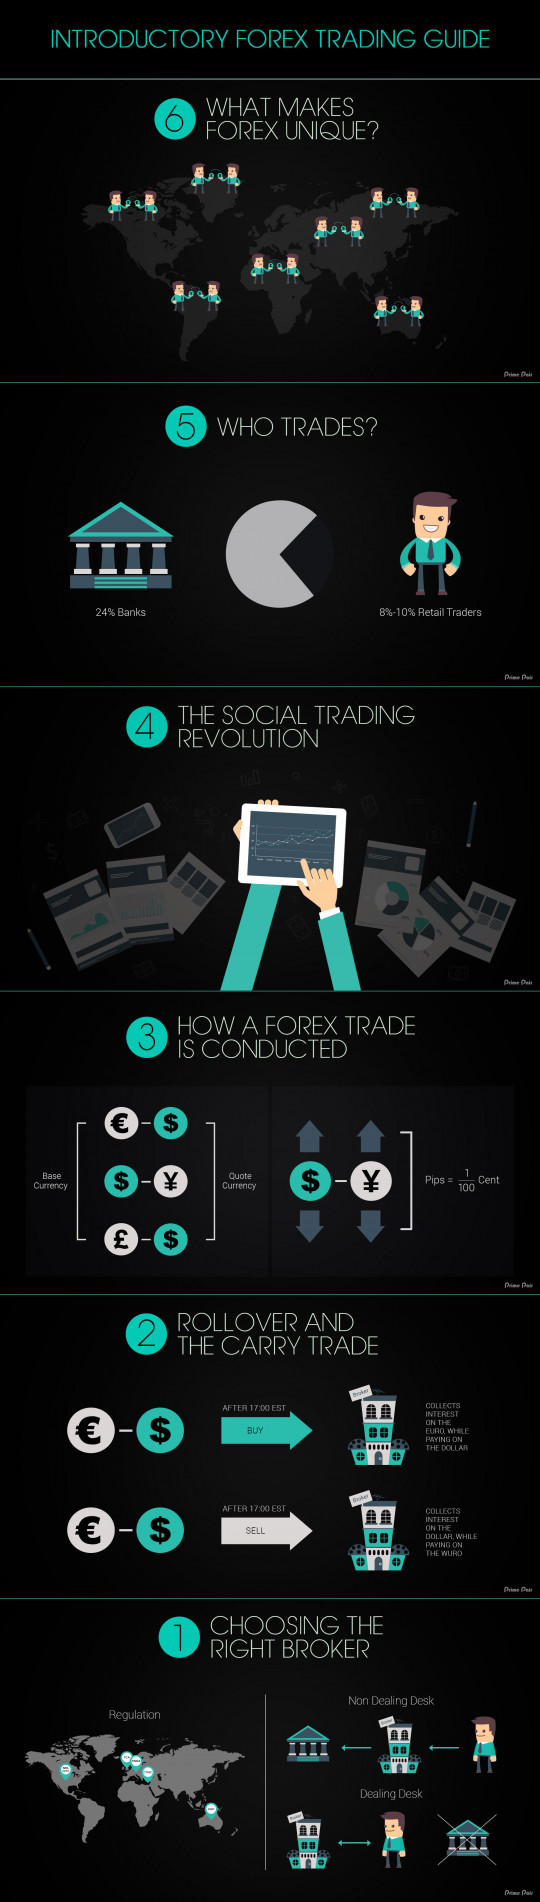 Introductory Forex Trading Guide